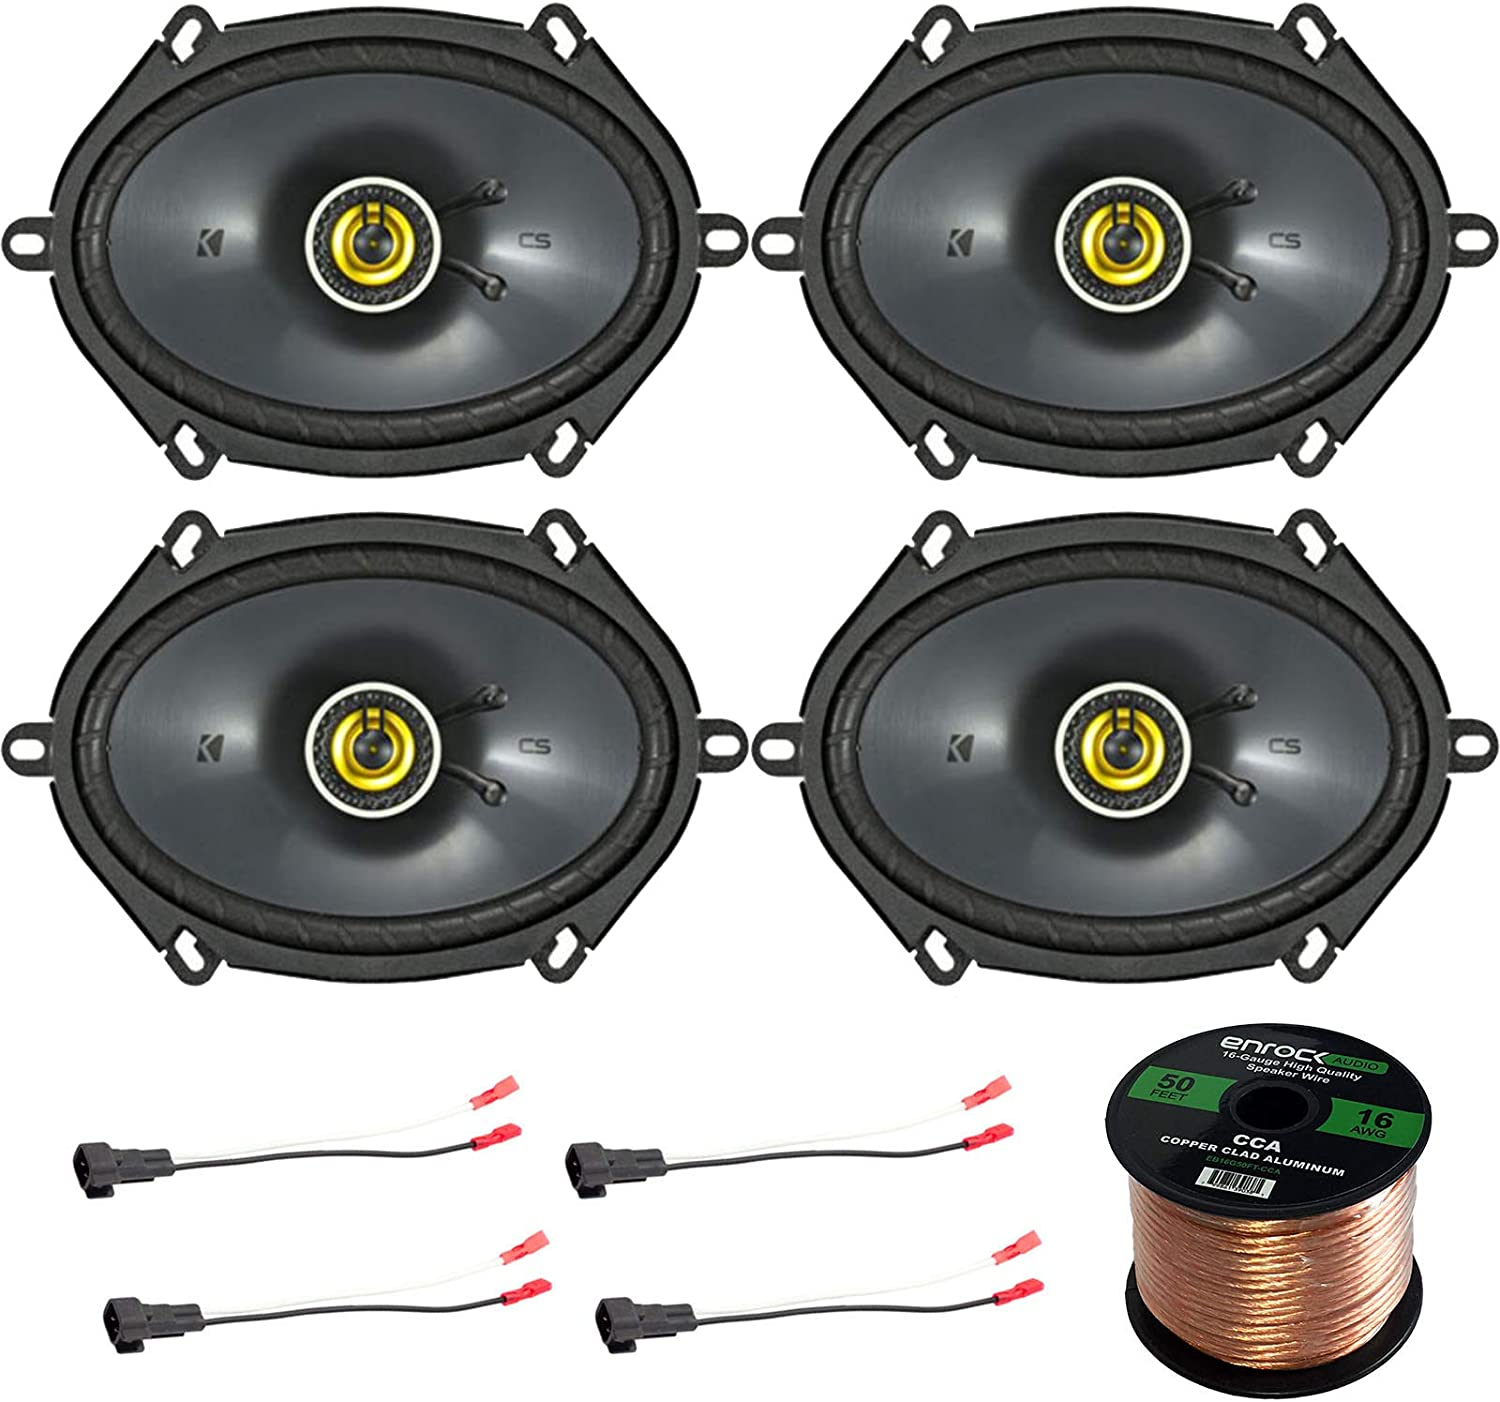 Car Speaker Set Combo of 10 Kicker 100CS101010 10x10 Inch 1050W 10-Way Car Coaxial  Stereo Speakers + 10 Metra 710-51000 Speaker Connector for Ford, Lincoln,